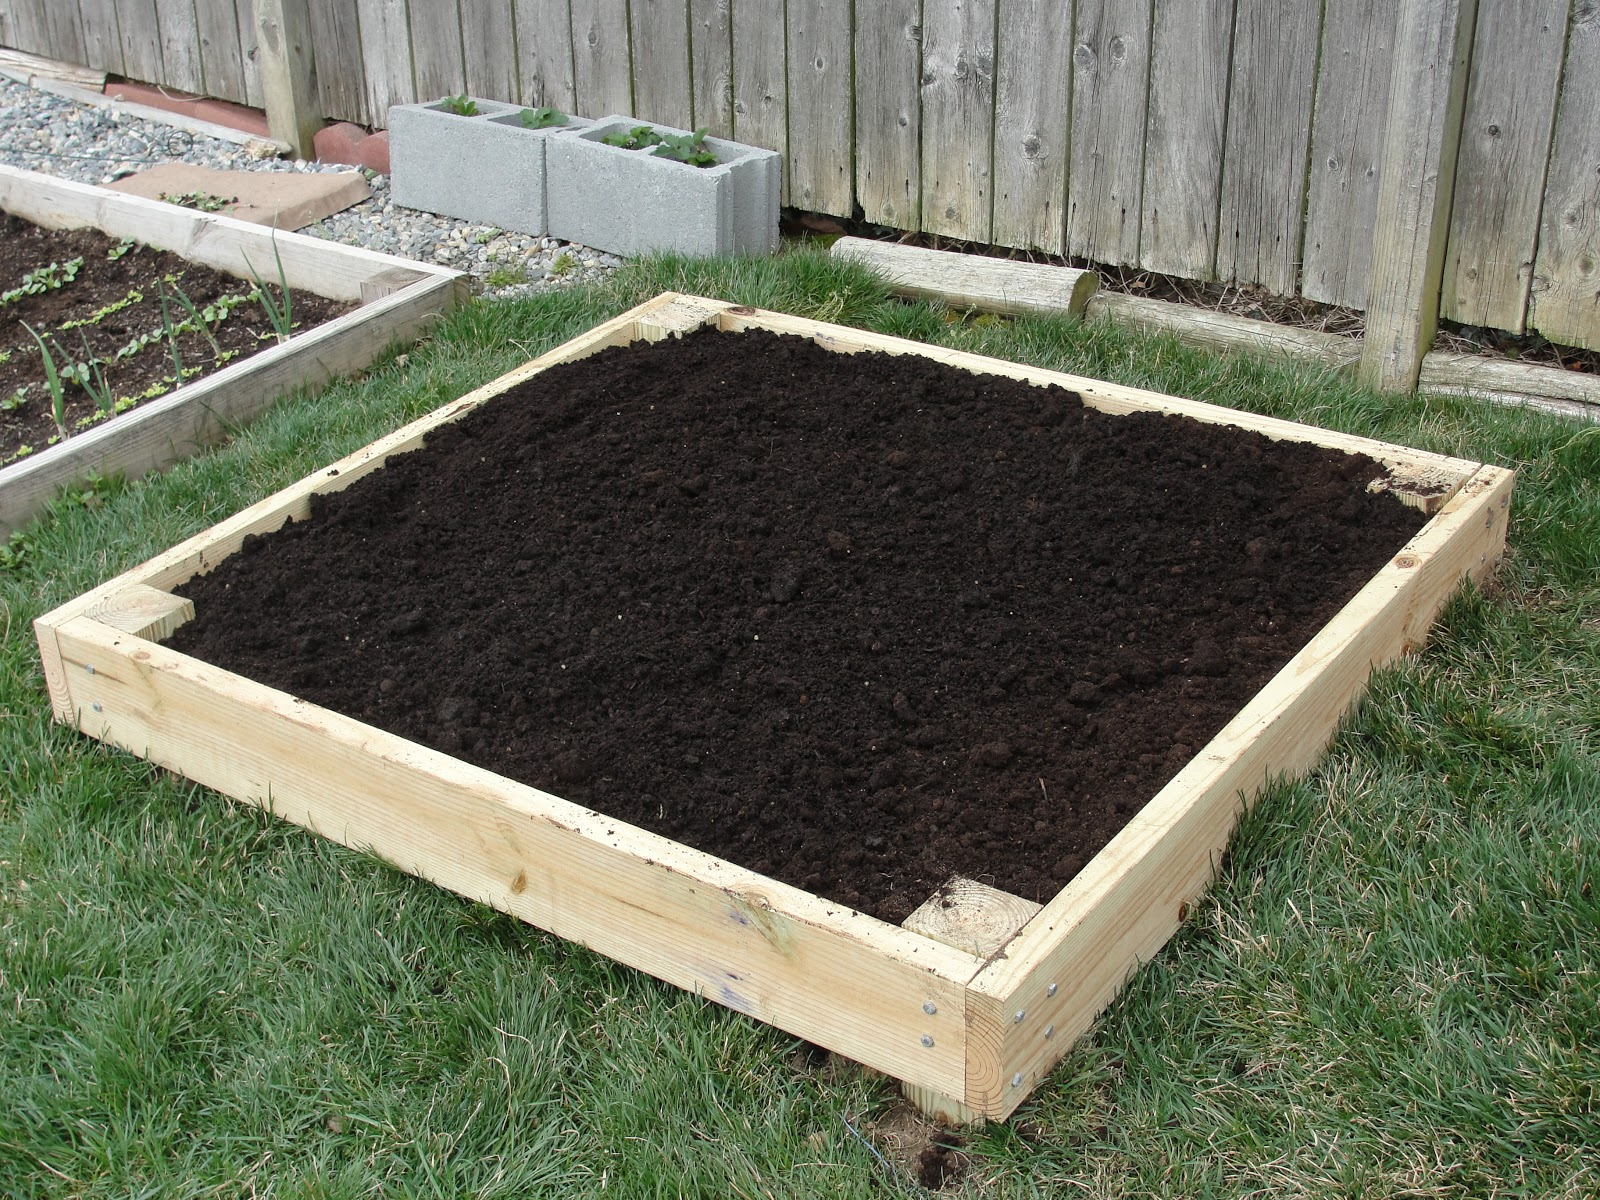 Lessons from the Garden: Build Your Own Raised Bed for ...